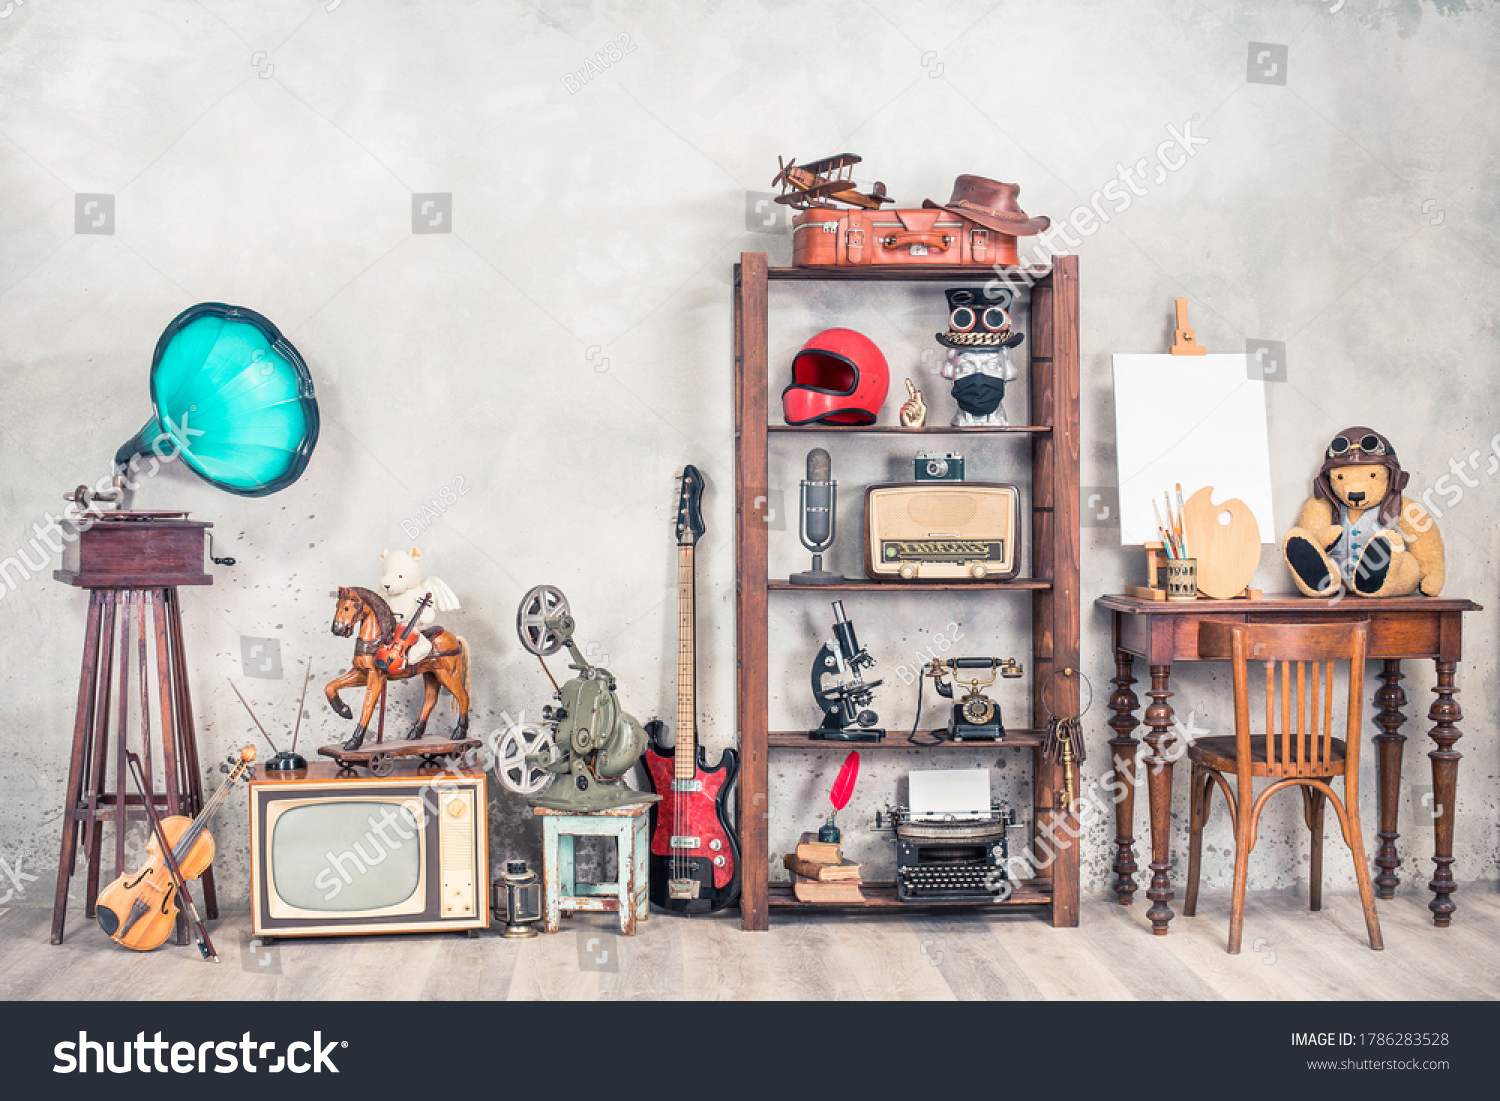 Antique media devices, writers tools, gramophone, film projector, old Teddy Bear toys and white canvas blank on easel, violin and guitar front concrete wall background. Vintage style filtered photo #1786283528